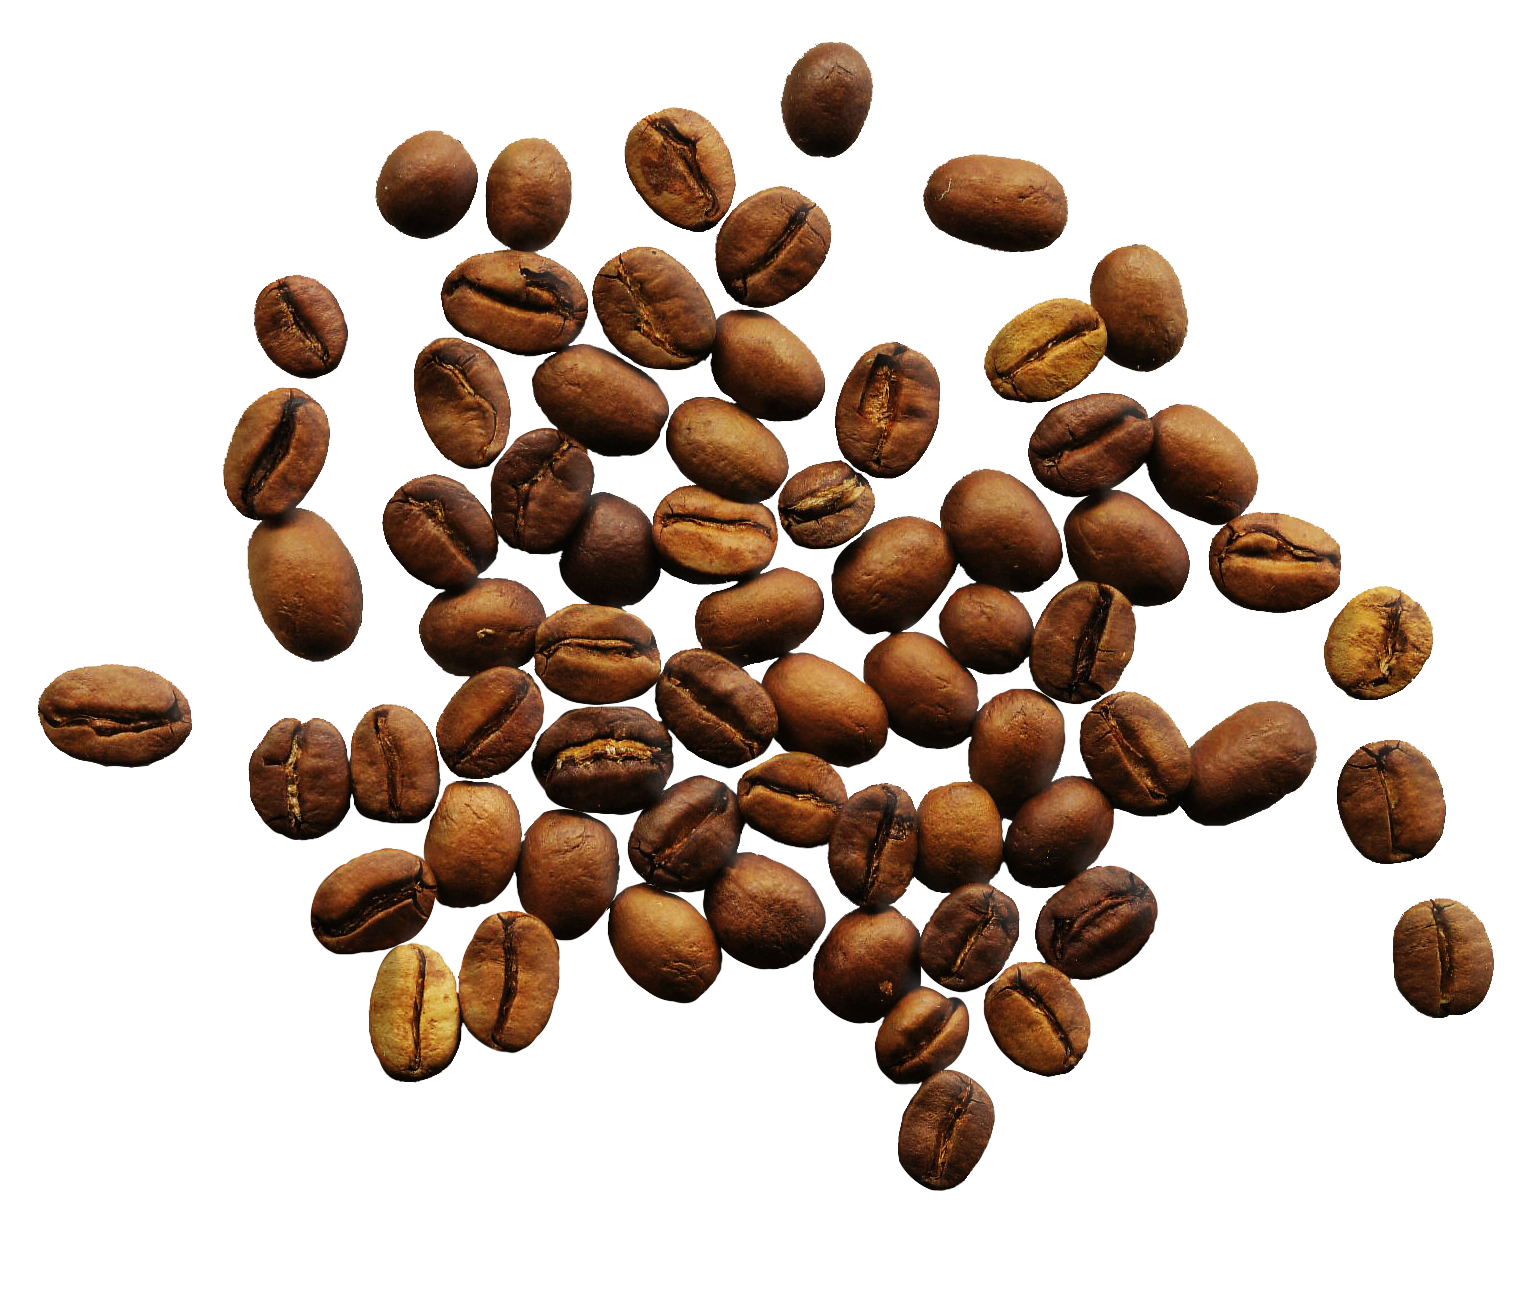 Coffee Beans Png Image - Coffee, Transparent background PNG HD thumbnail